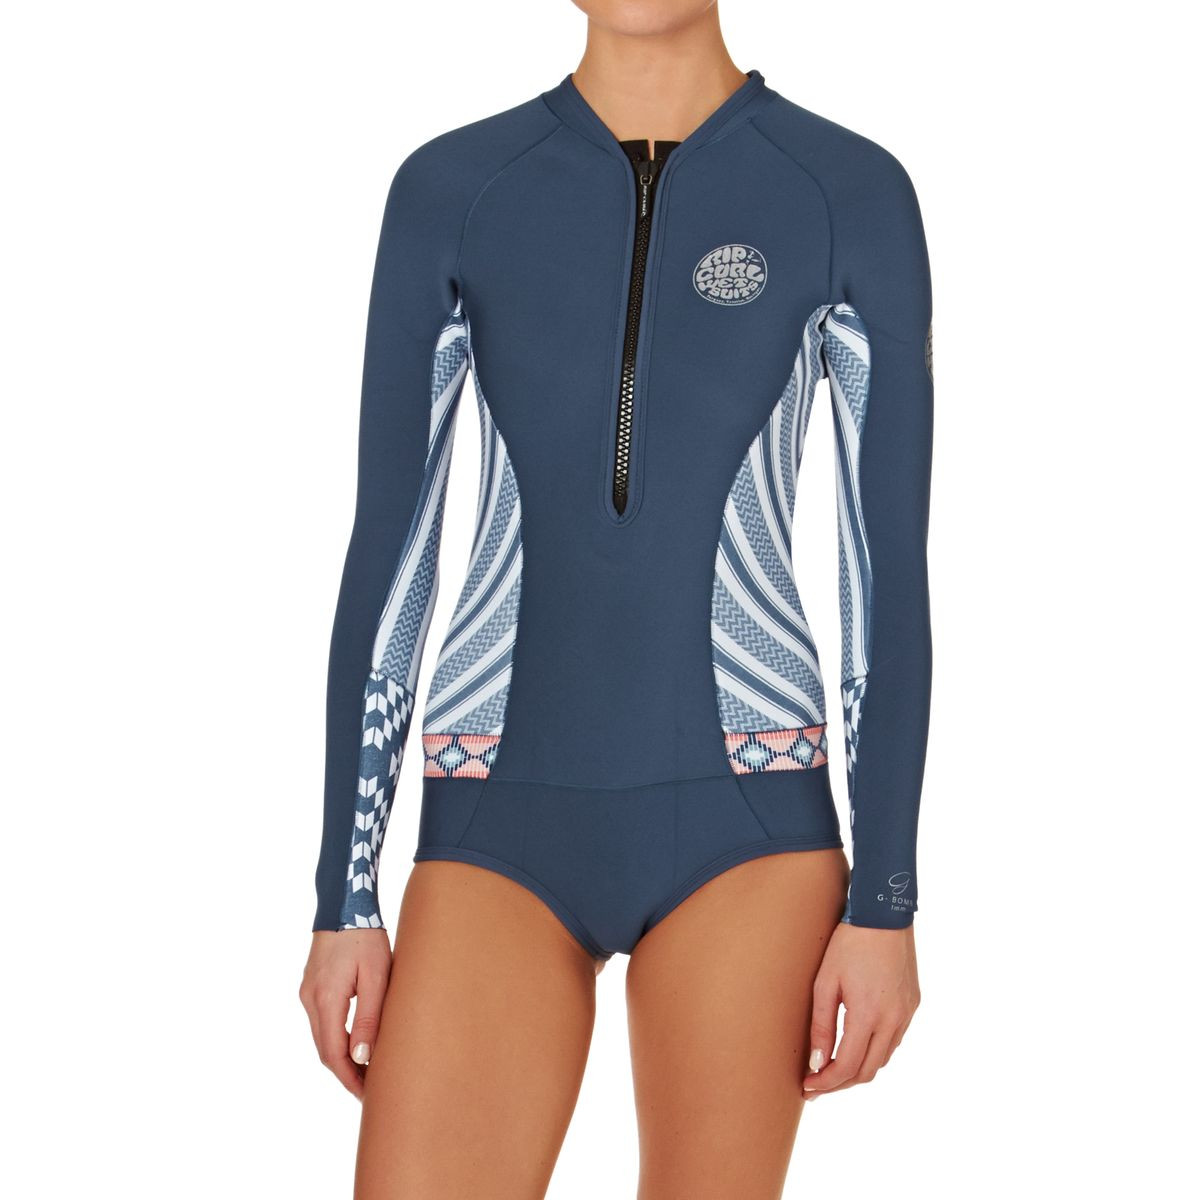 Rip Curl Womens G-Bomb 1mm 2017 Front Zip Long Sleeve Hi Cut Shorty Wetsuit - Navy